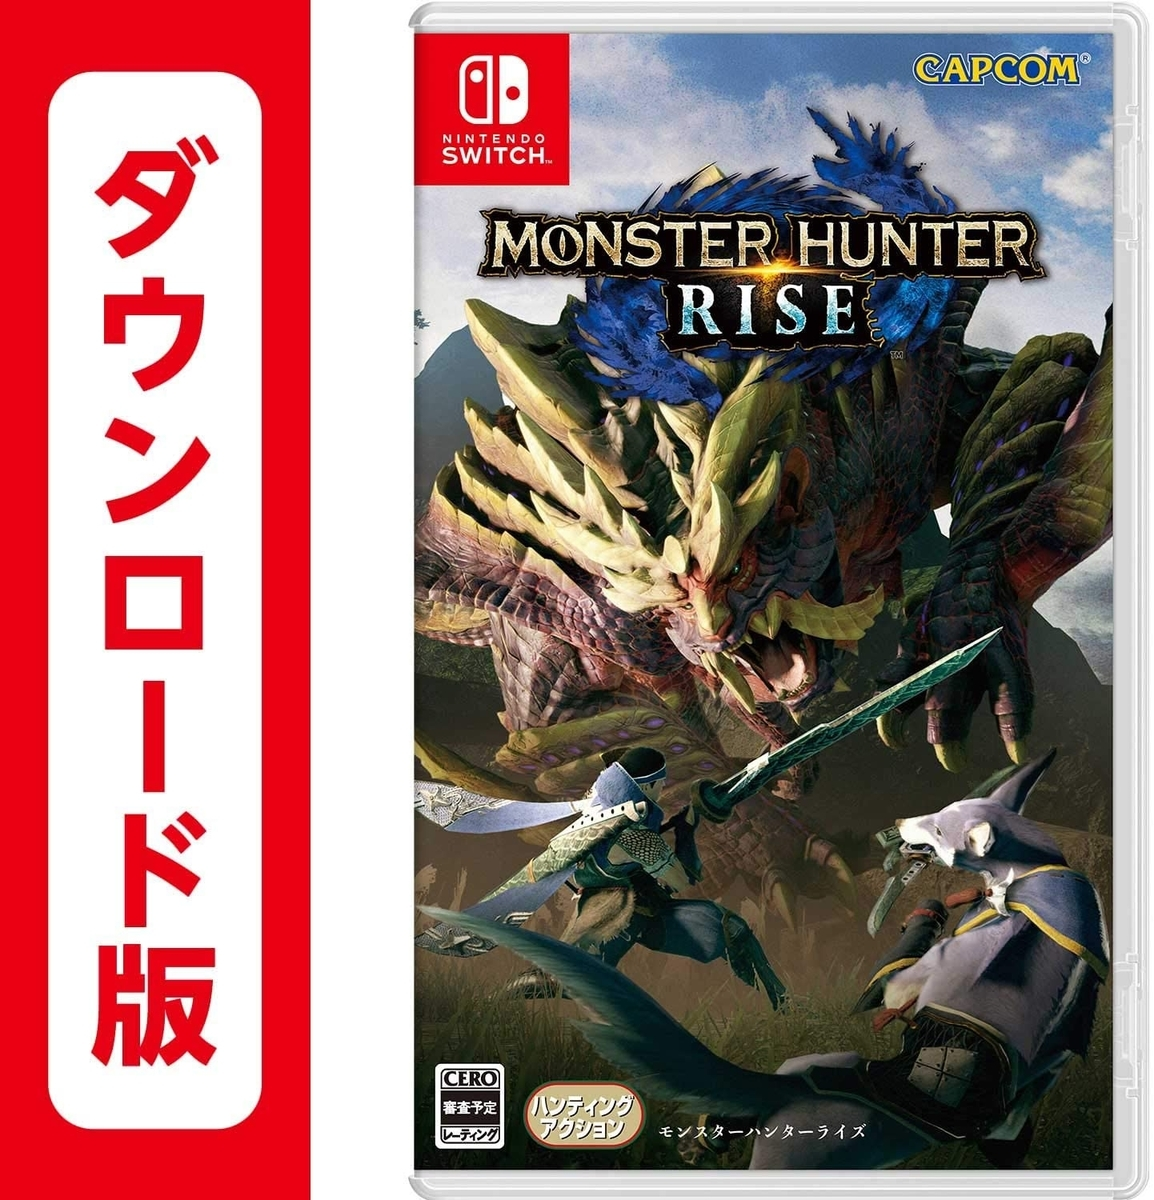 minster hunter rise ダウンロード版